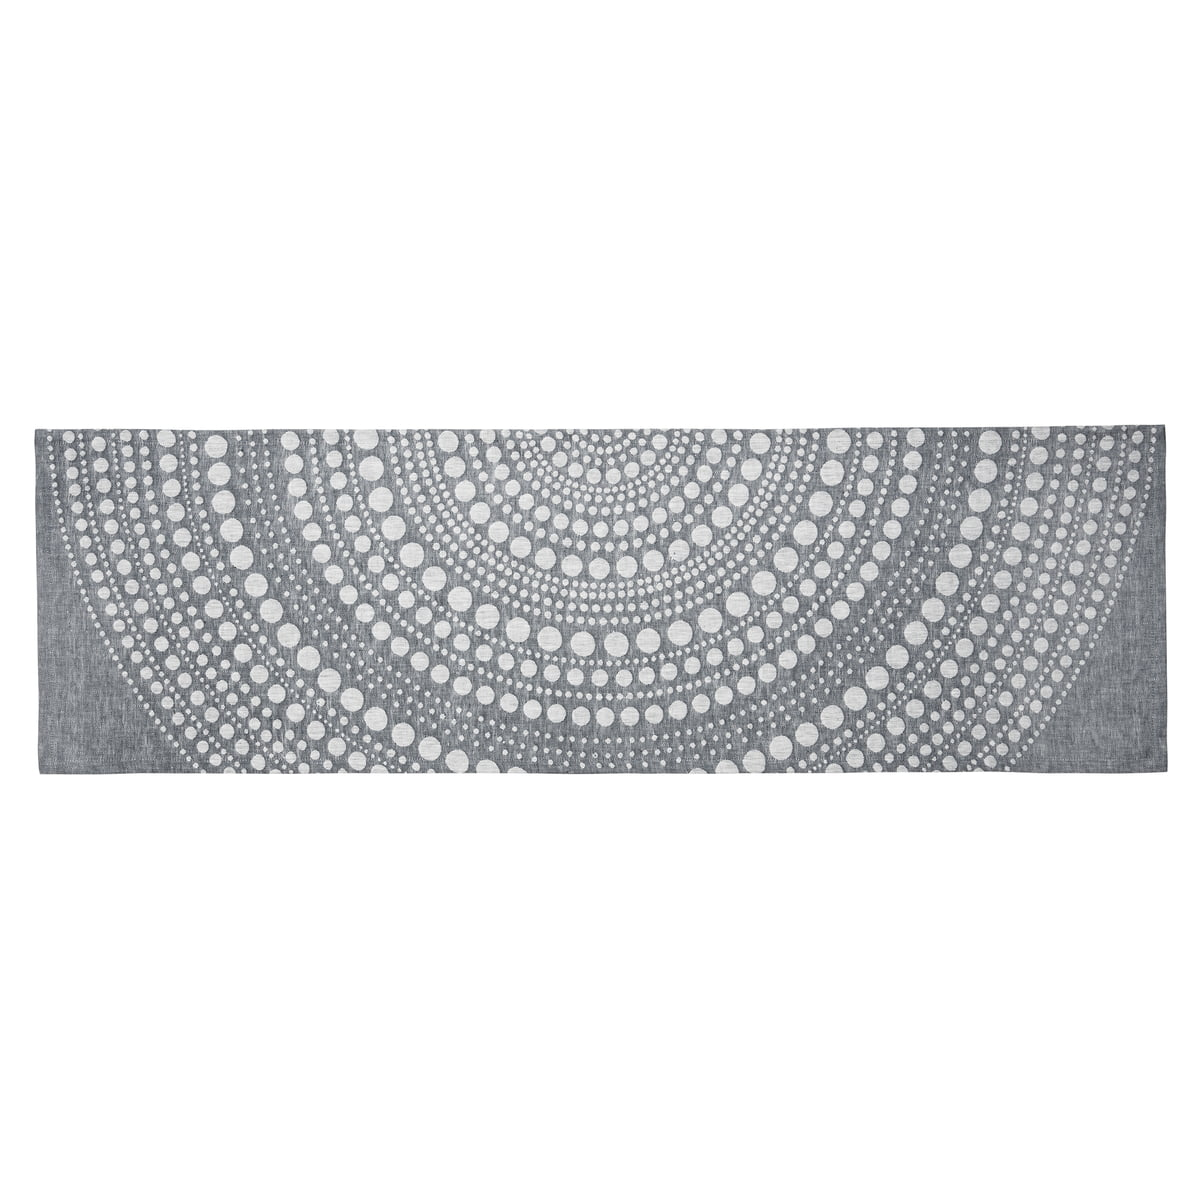 Kastehelmi Table Runner 44 X 144 Cm By Iittala In Dark Grey